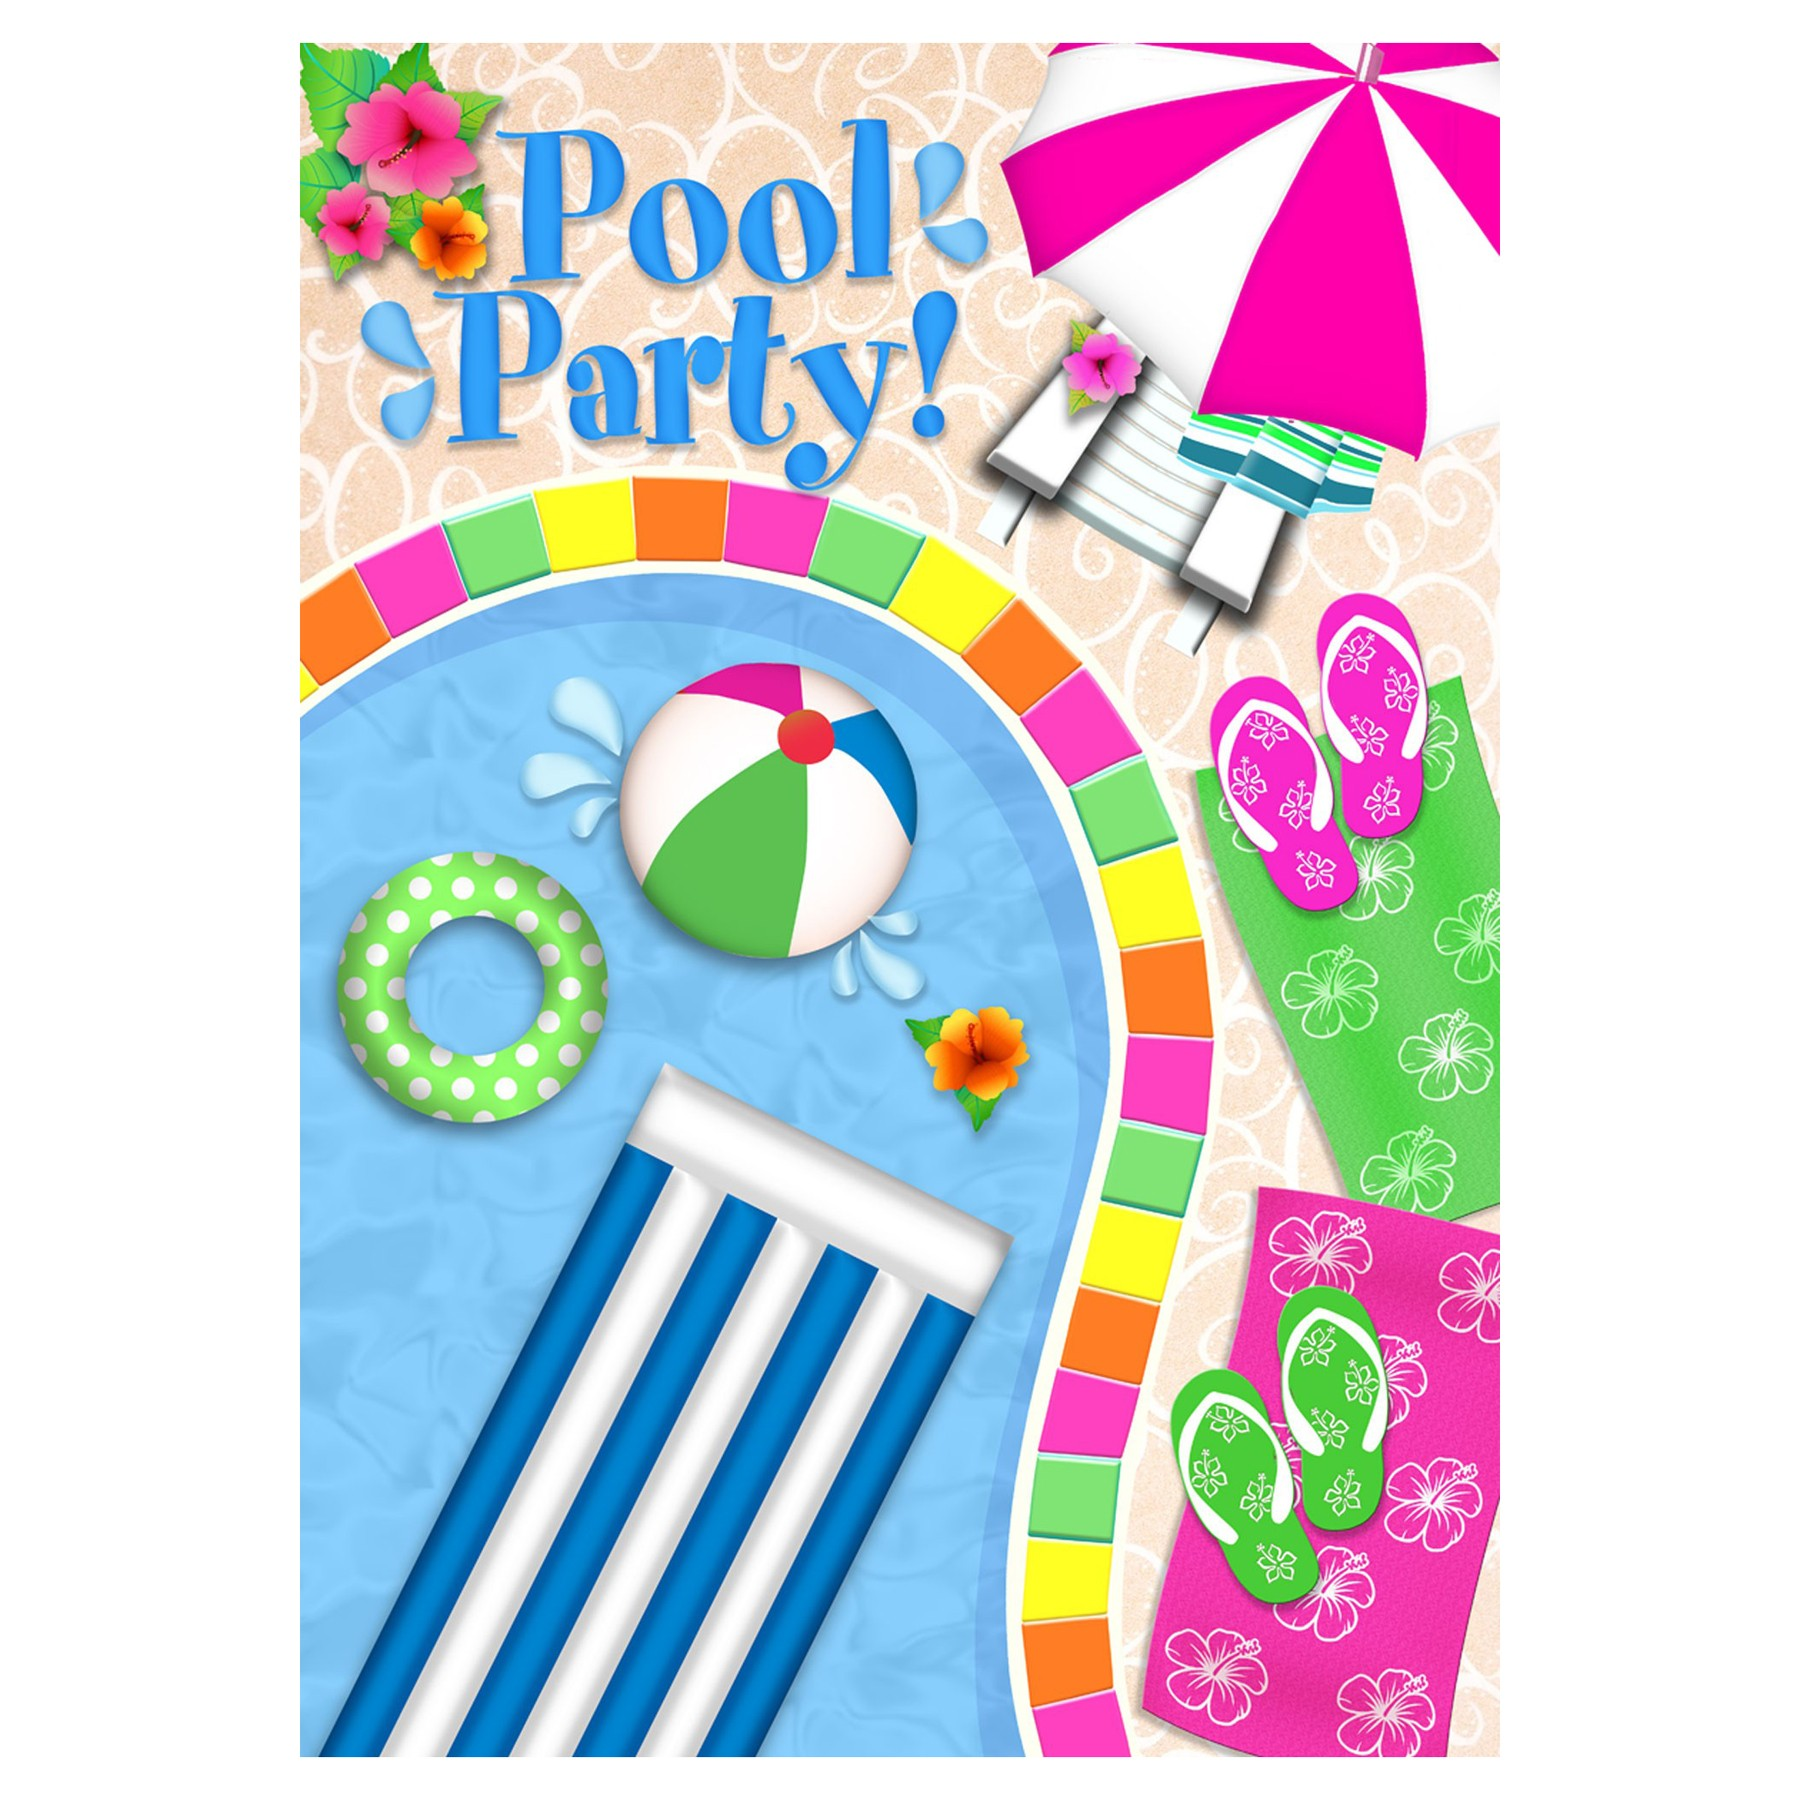 Pool party swimming party clipart free images